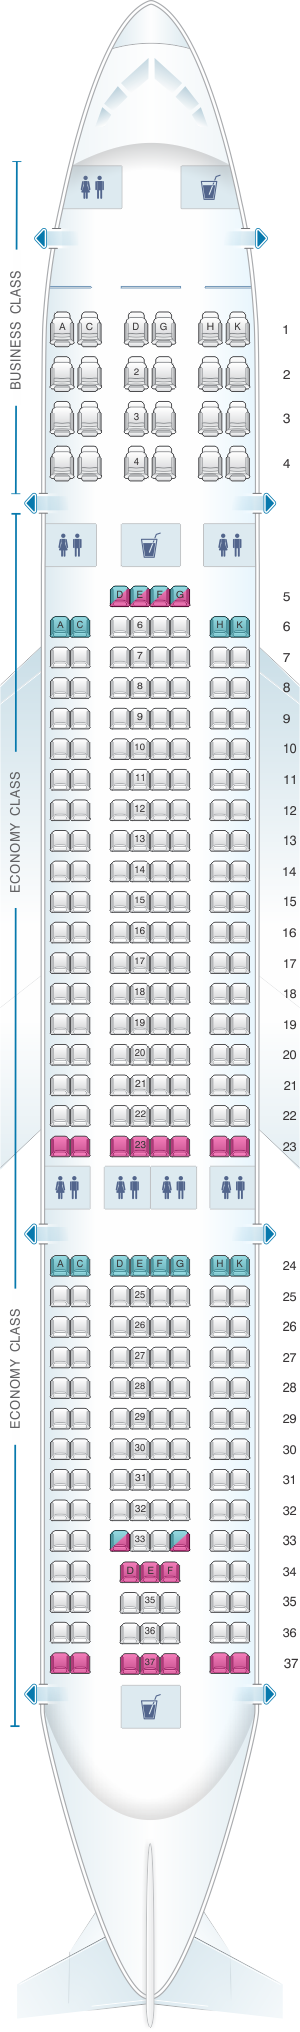 Seat map for Vietnam Airlines Airbus A330 200 280PAX V2